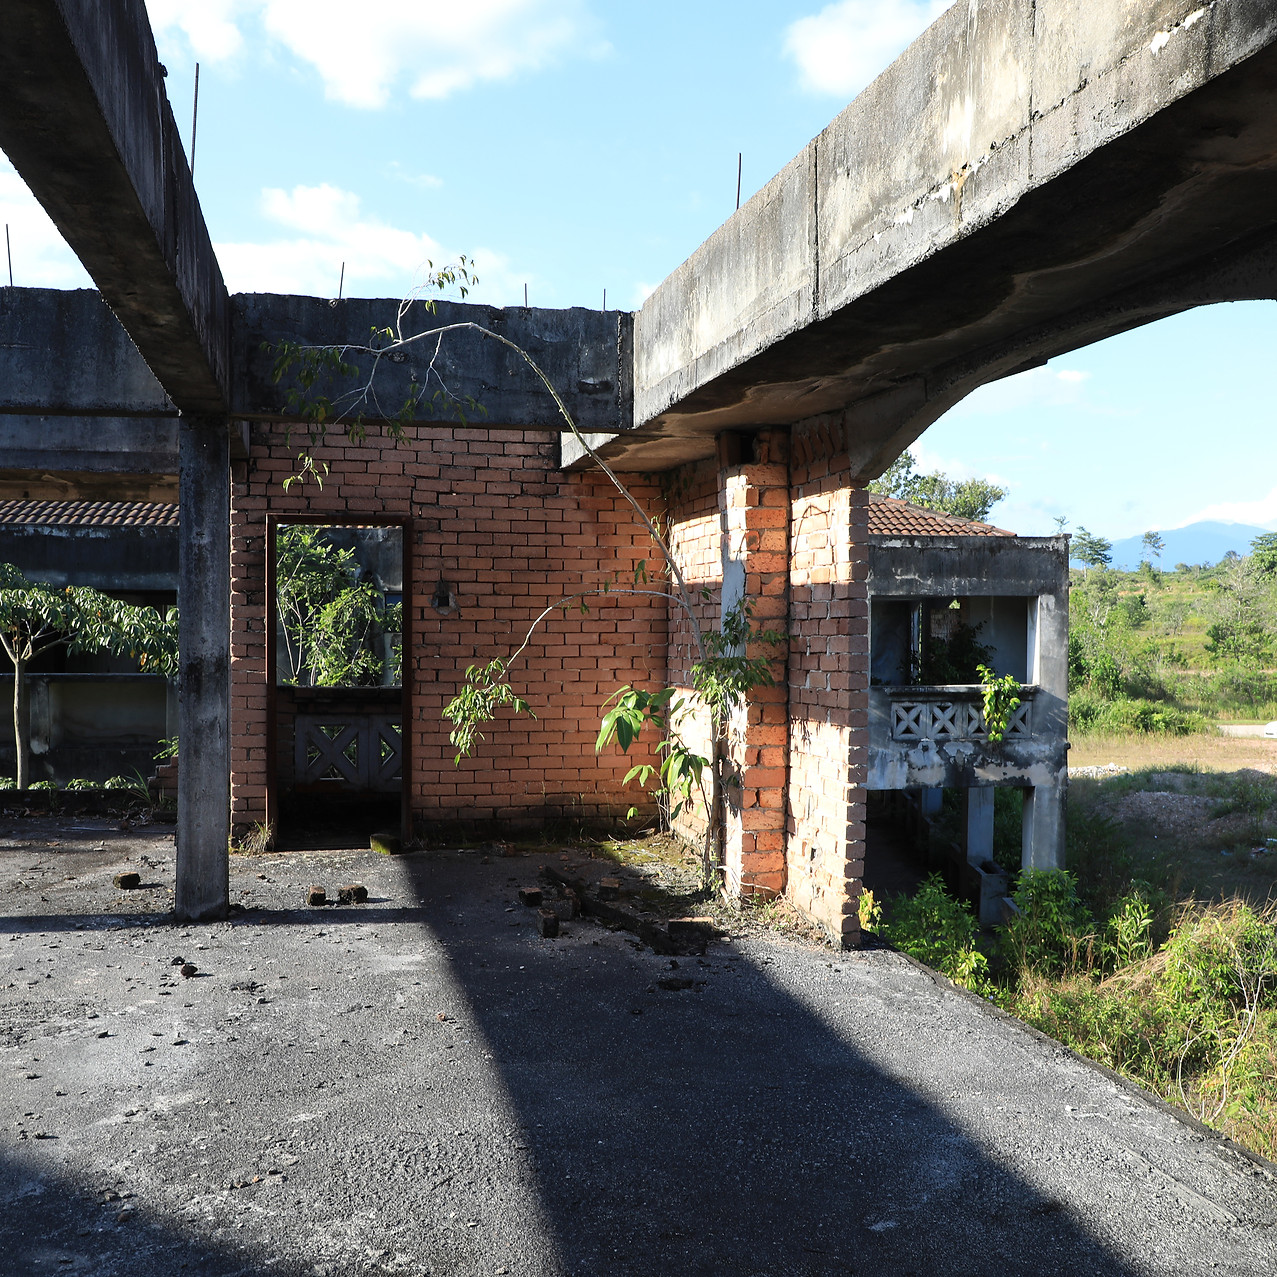 Derelict housing project, Hulu Selangor, Malaysia